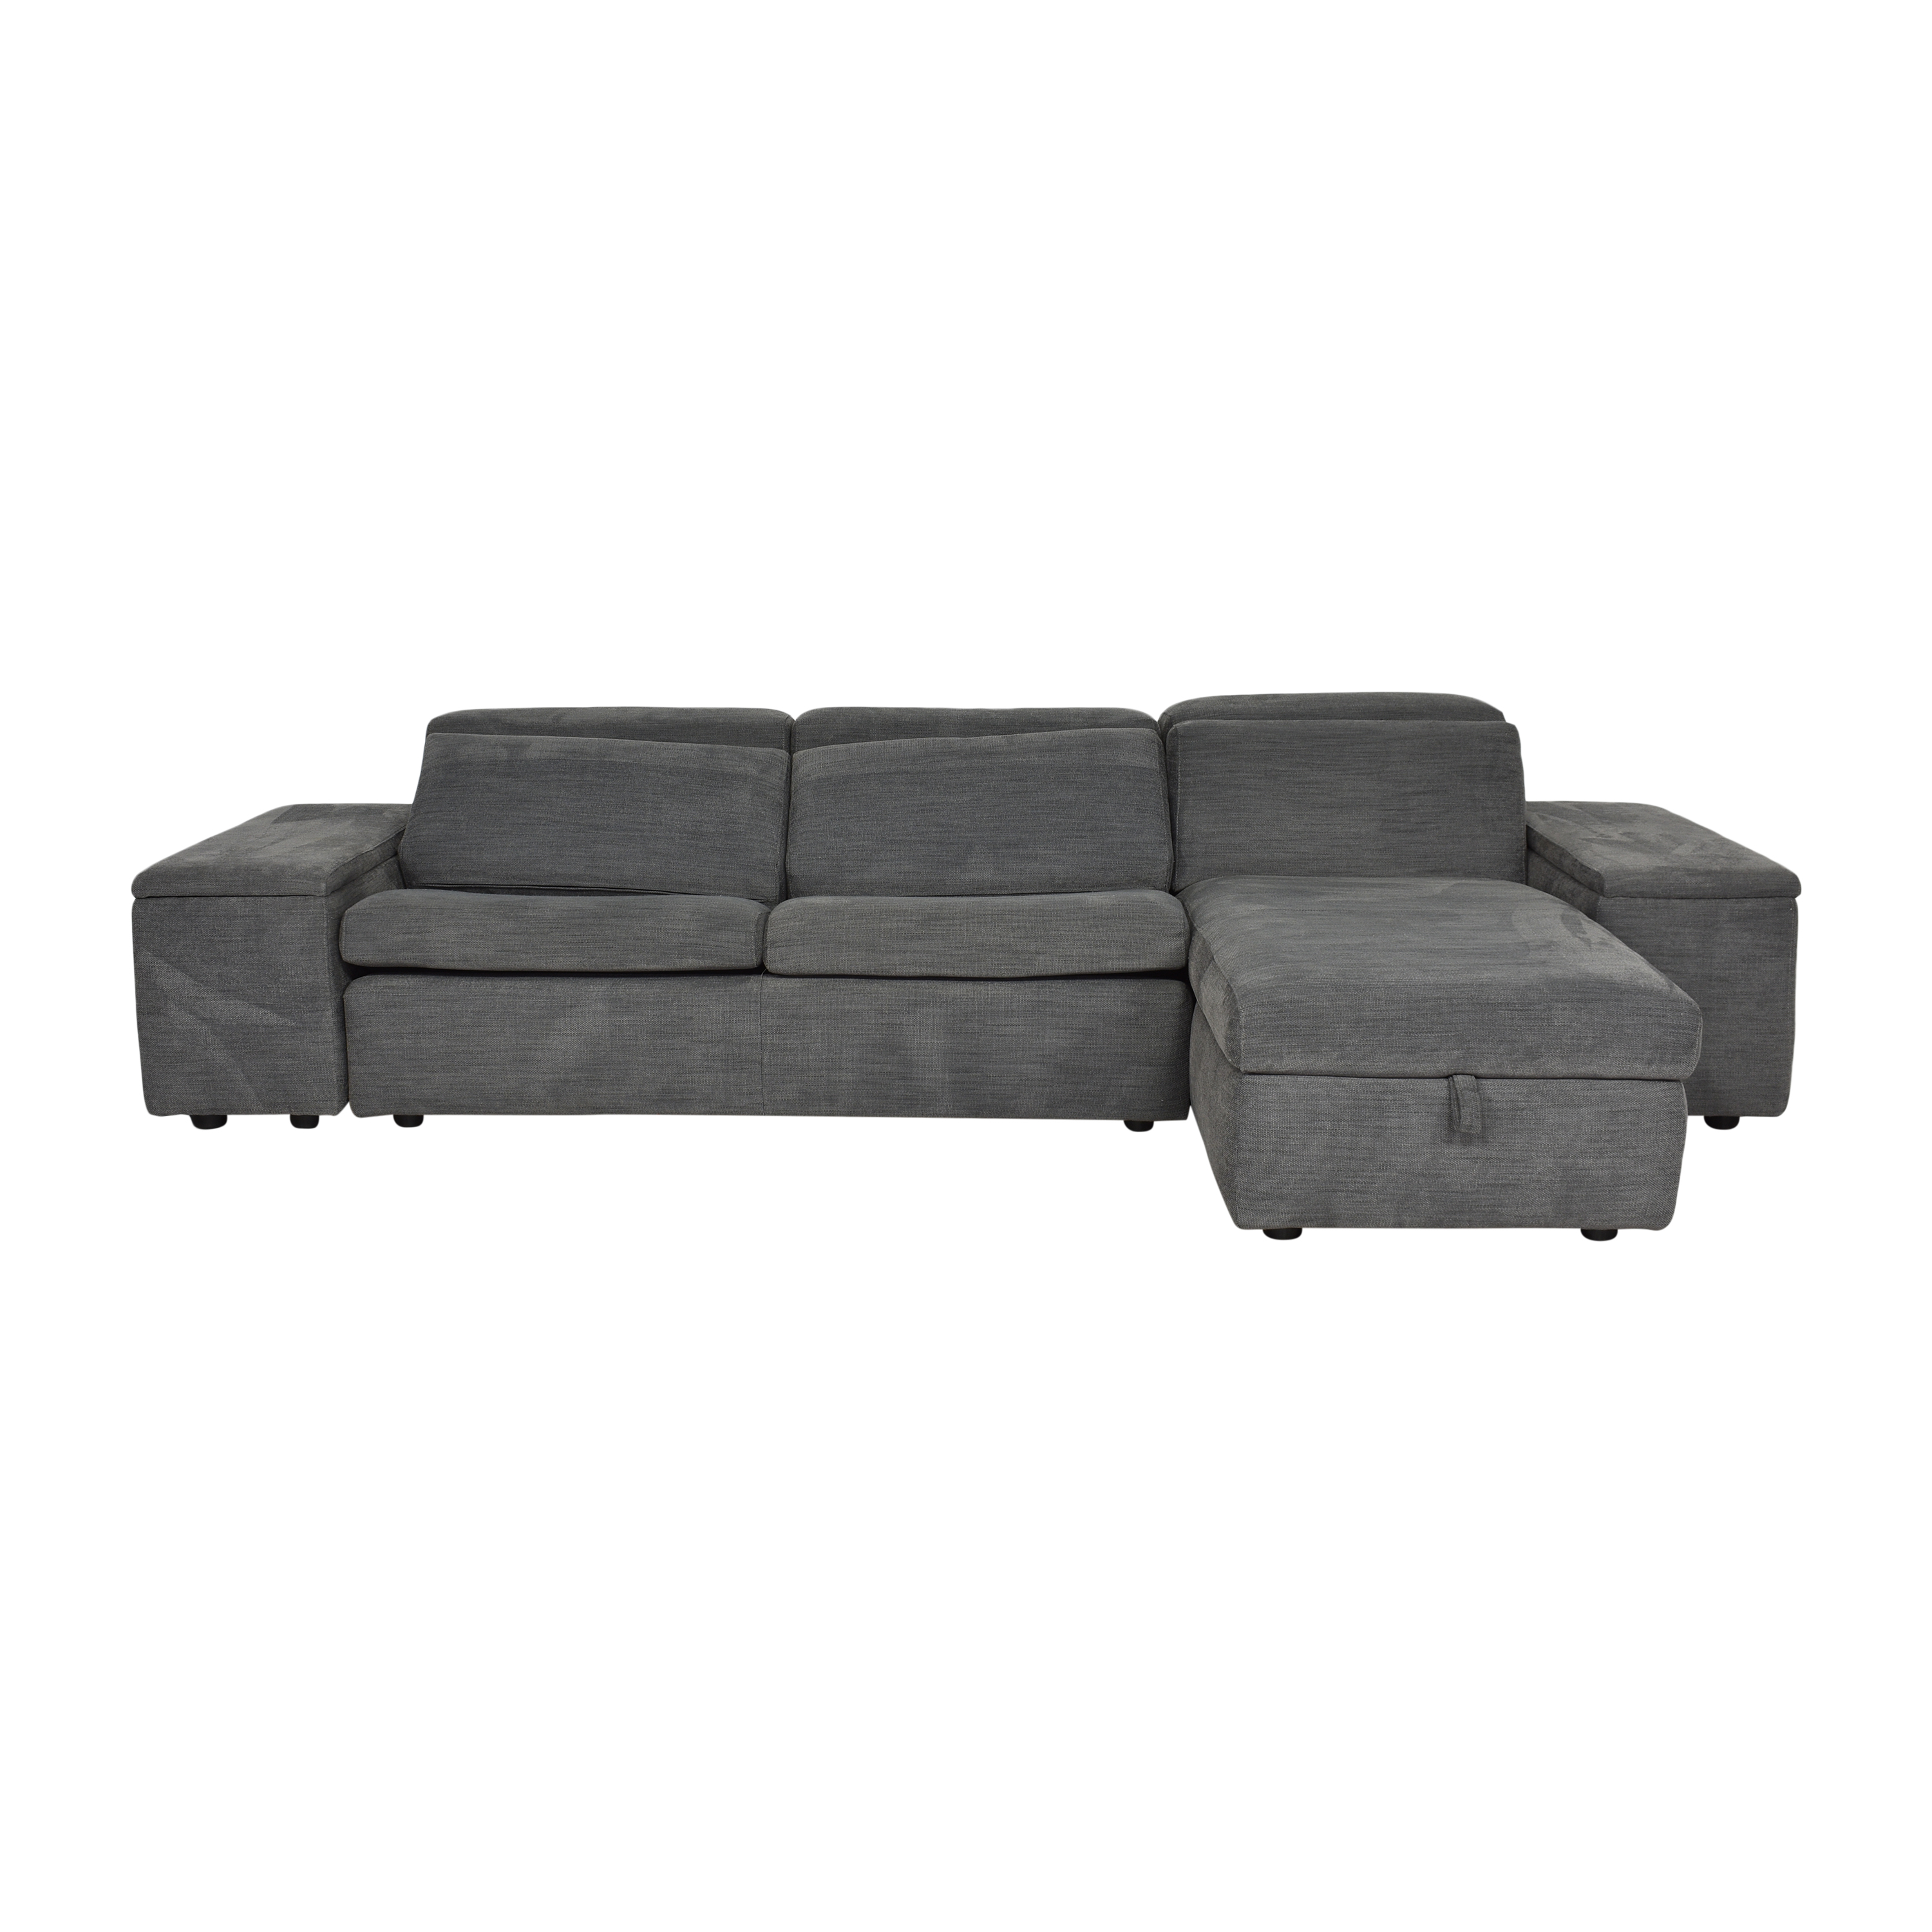 West Elm Enzo Sectional Sofa Sleeper with Storage / Sectionals